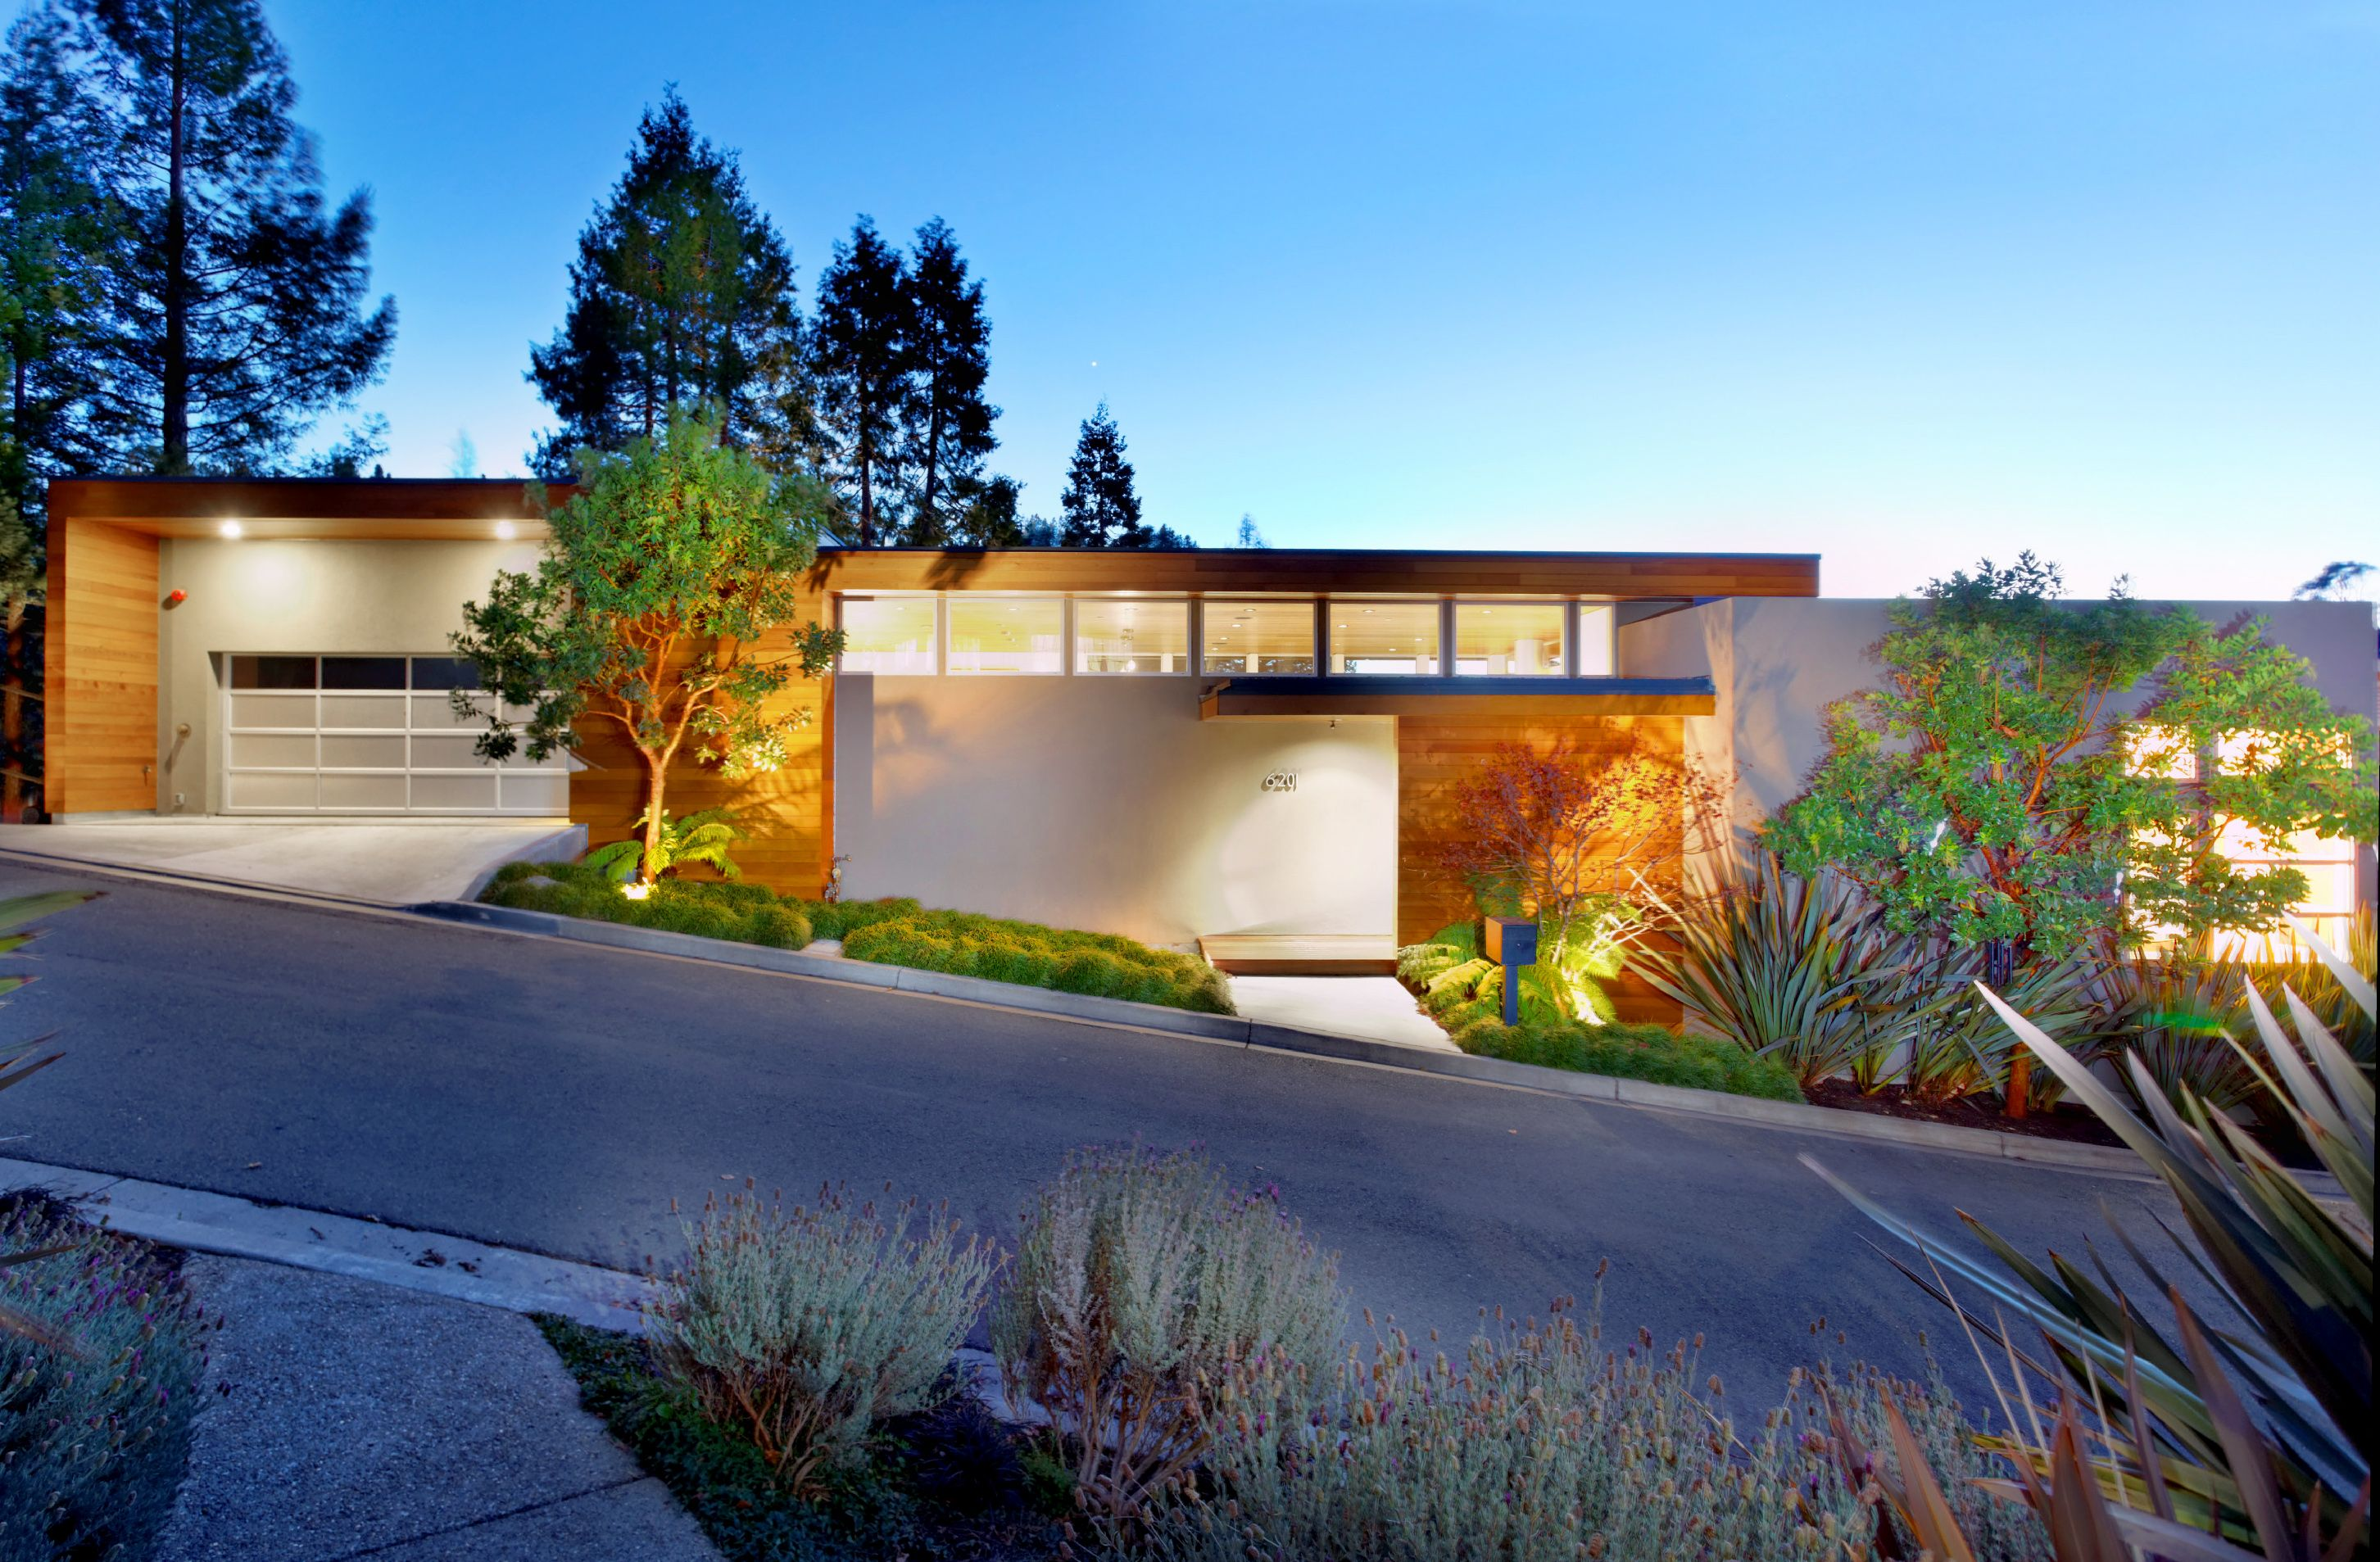 Custom Built Modern Home Designed By Bay Area Architect Robert Swatt Located In Oakland California